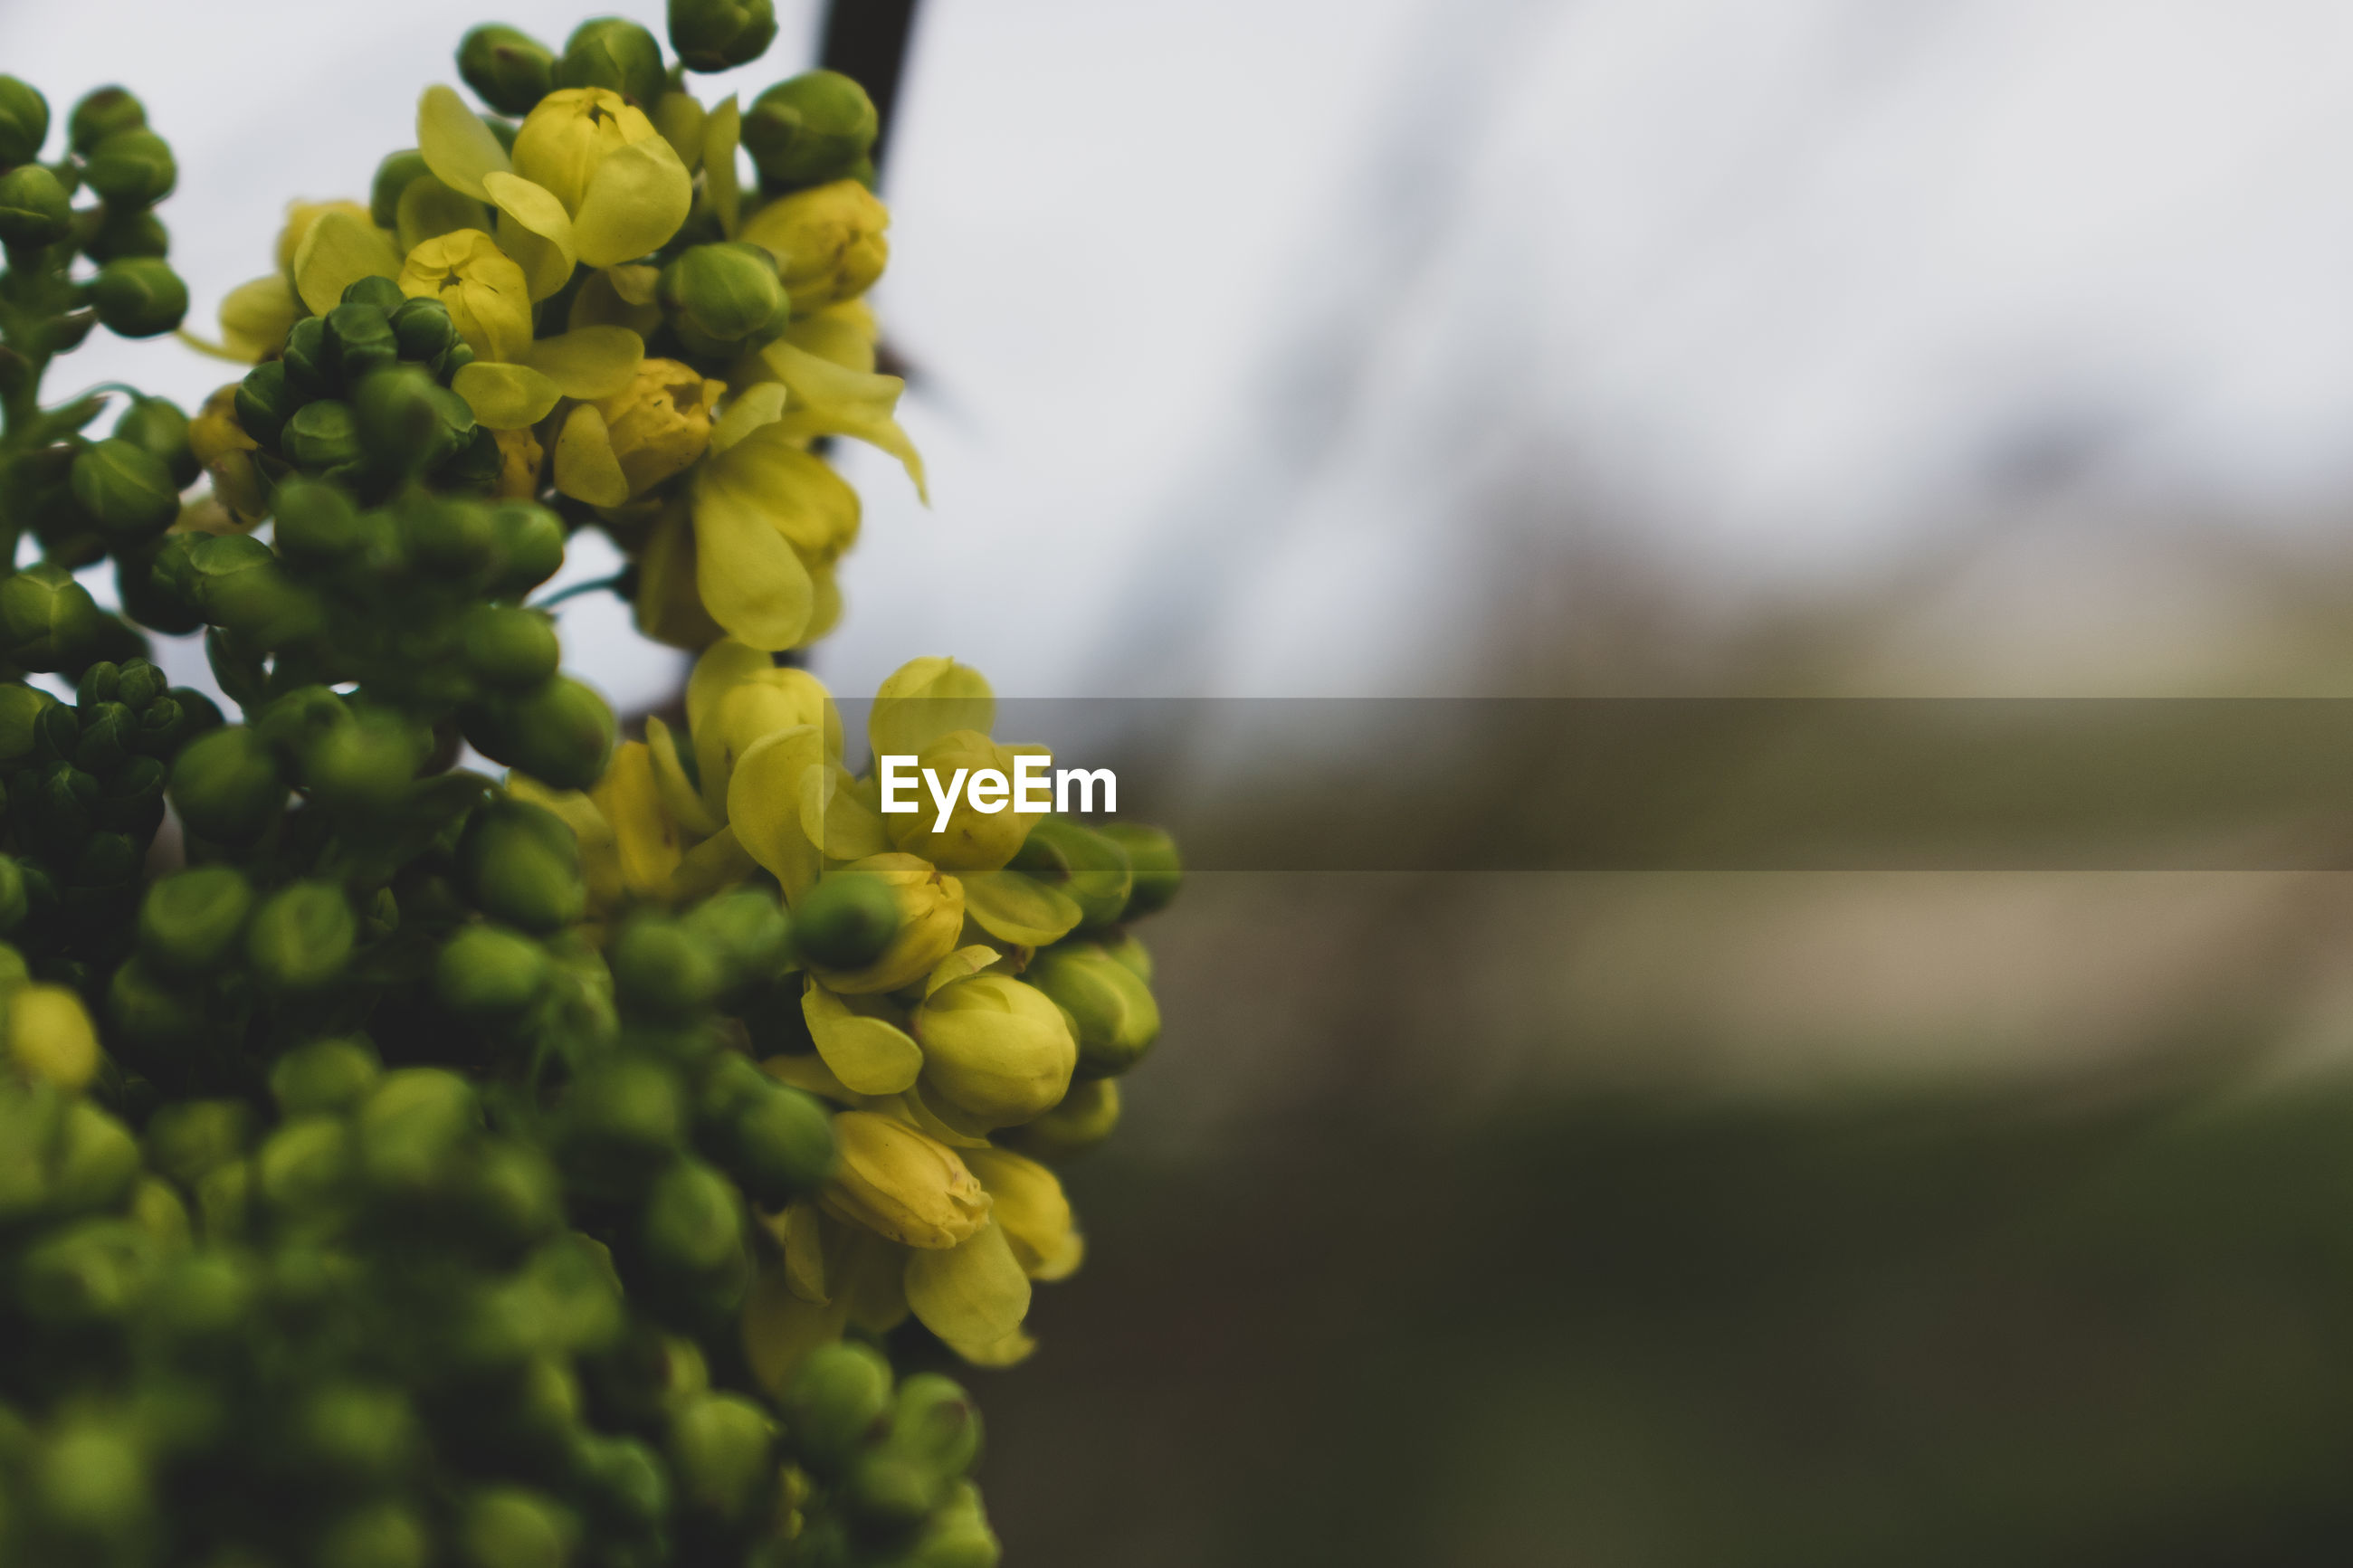 growth, plant, freshness, green color, close-up, beauty in nature, food and drink, healthy eating, no people, day, food, nature, focus on foreground, fruit, flower, selective focus, wellbeing, flowering plant, outdoors, leaf